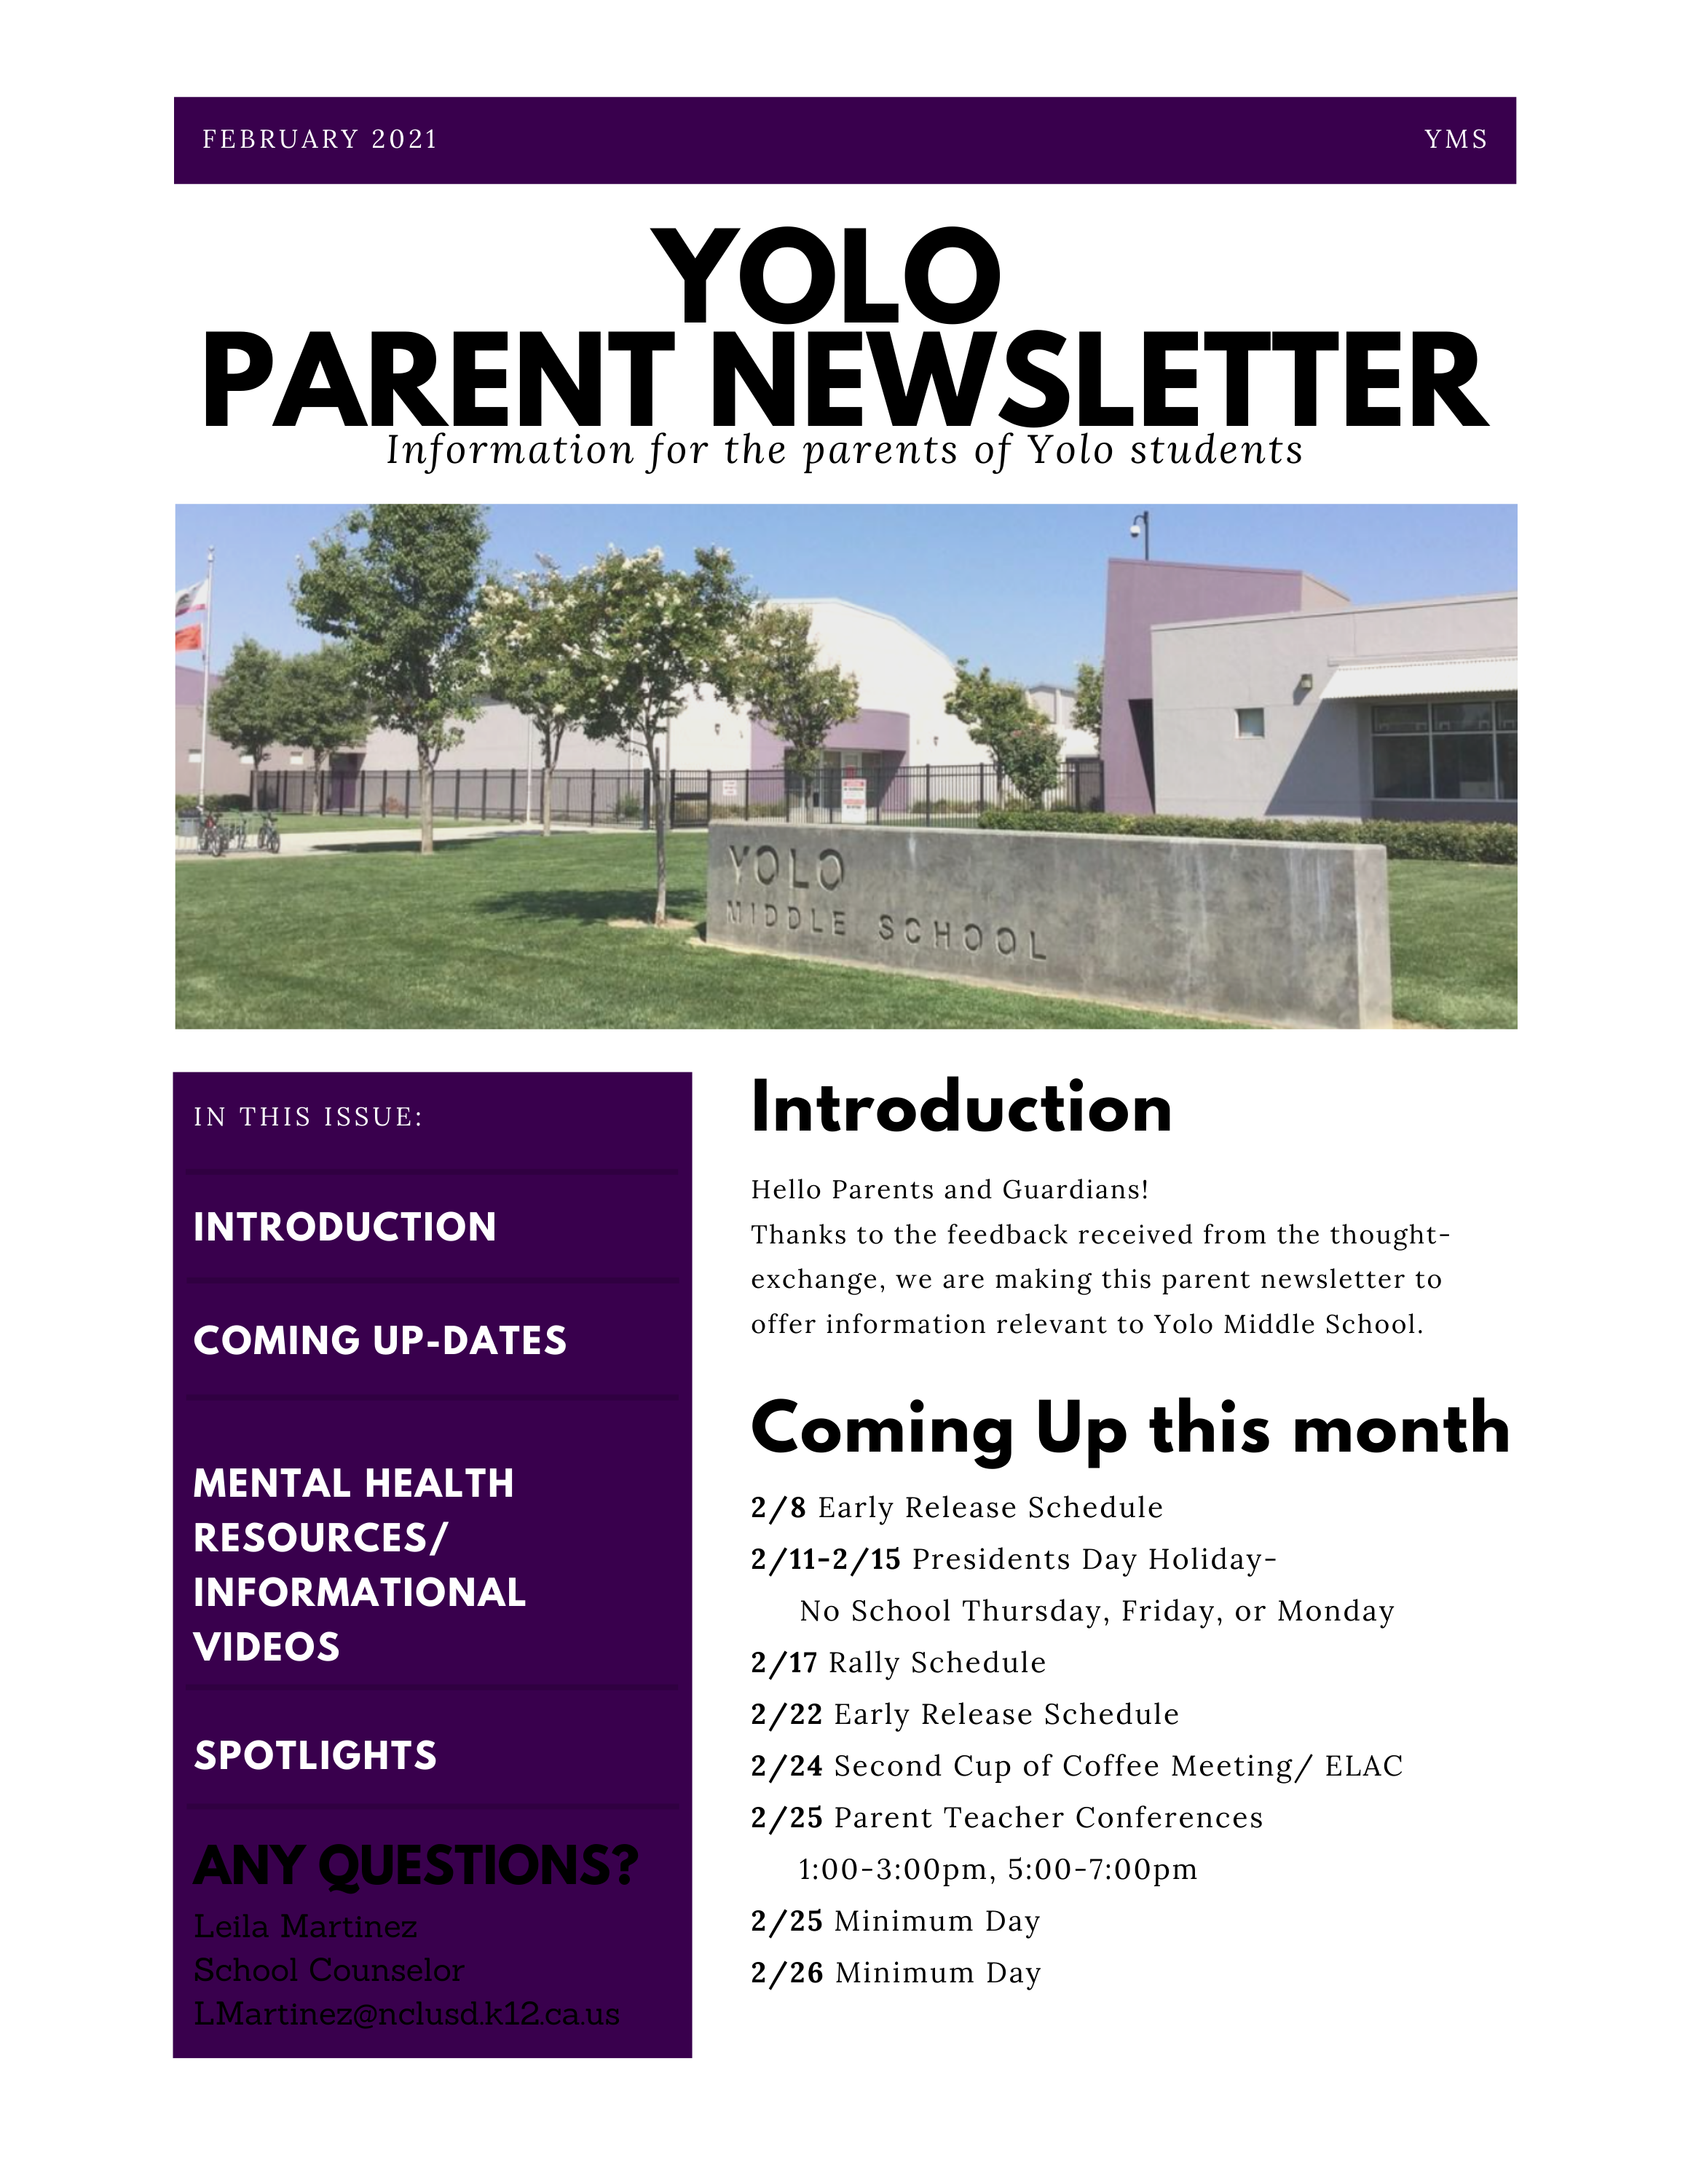 February 2021 Newsletter-Link to PDF